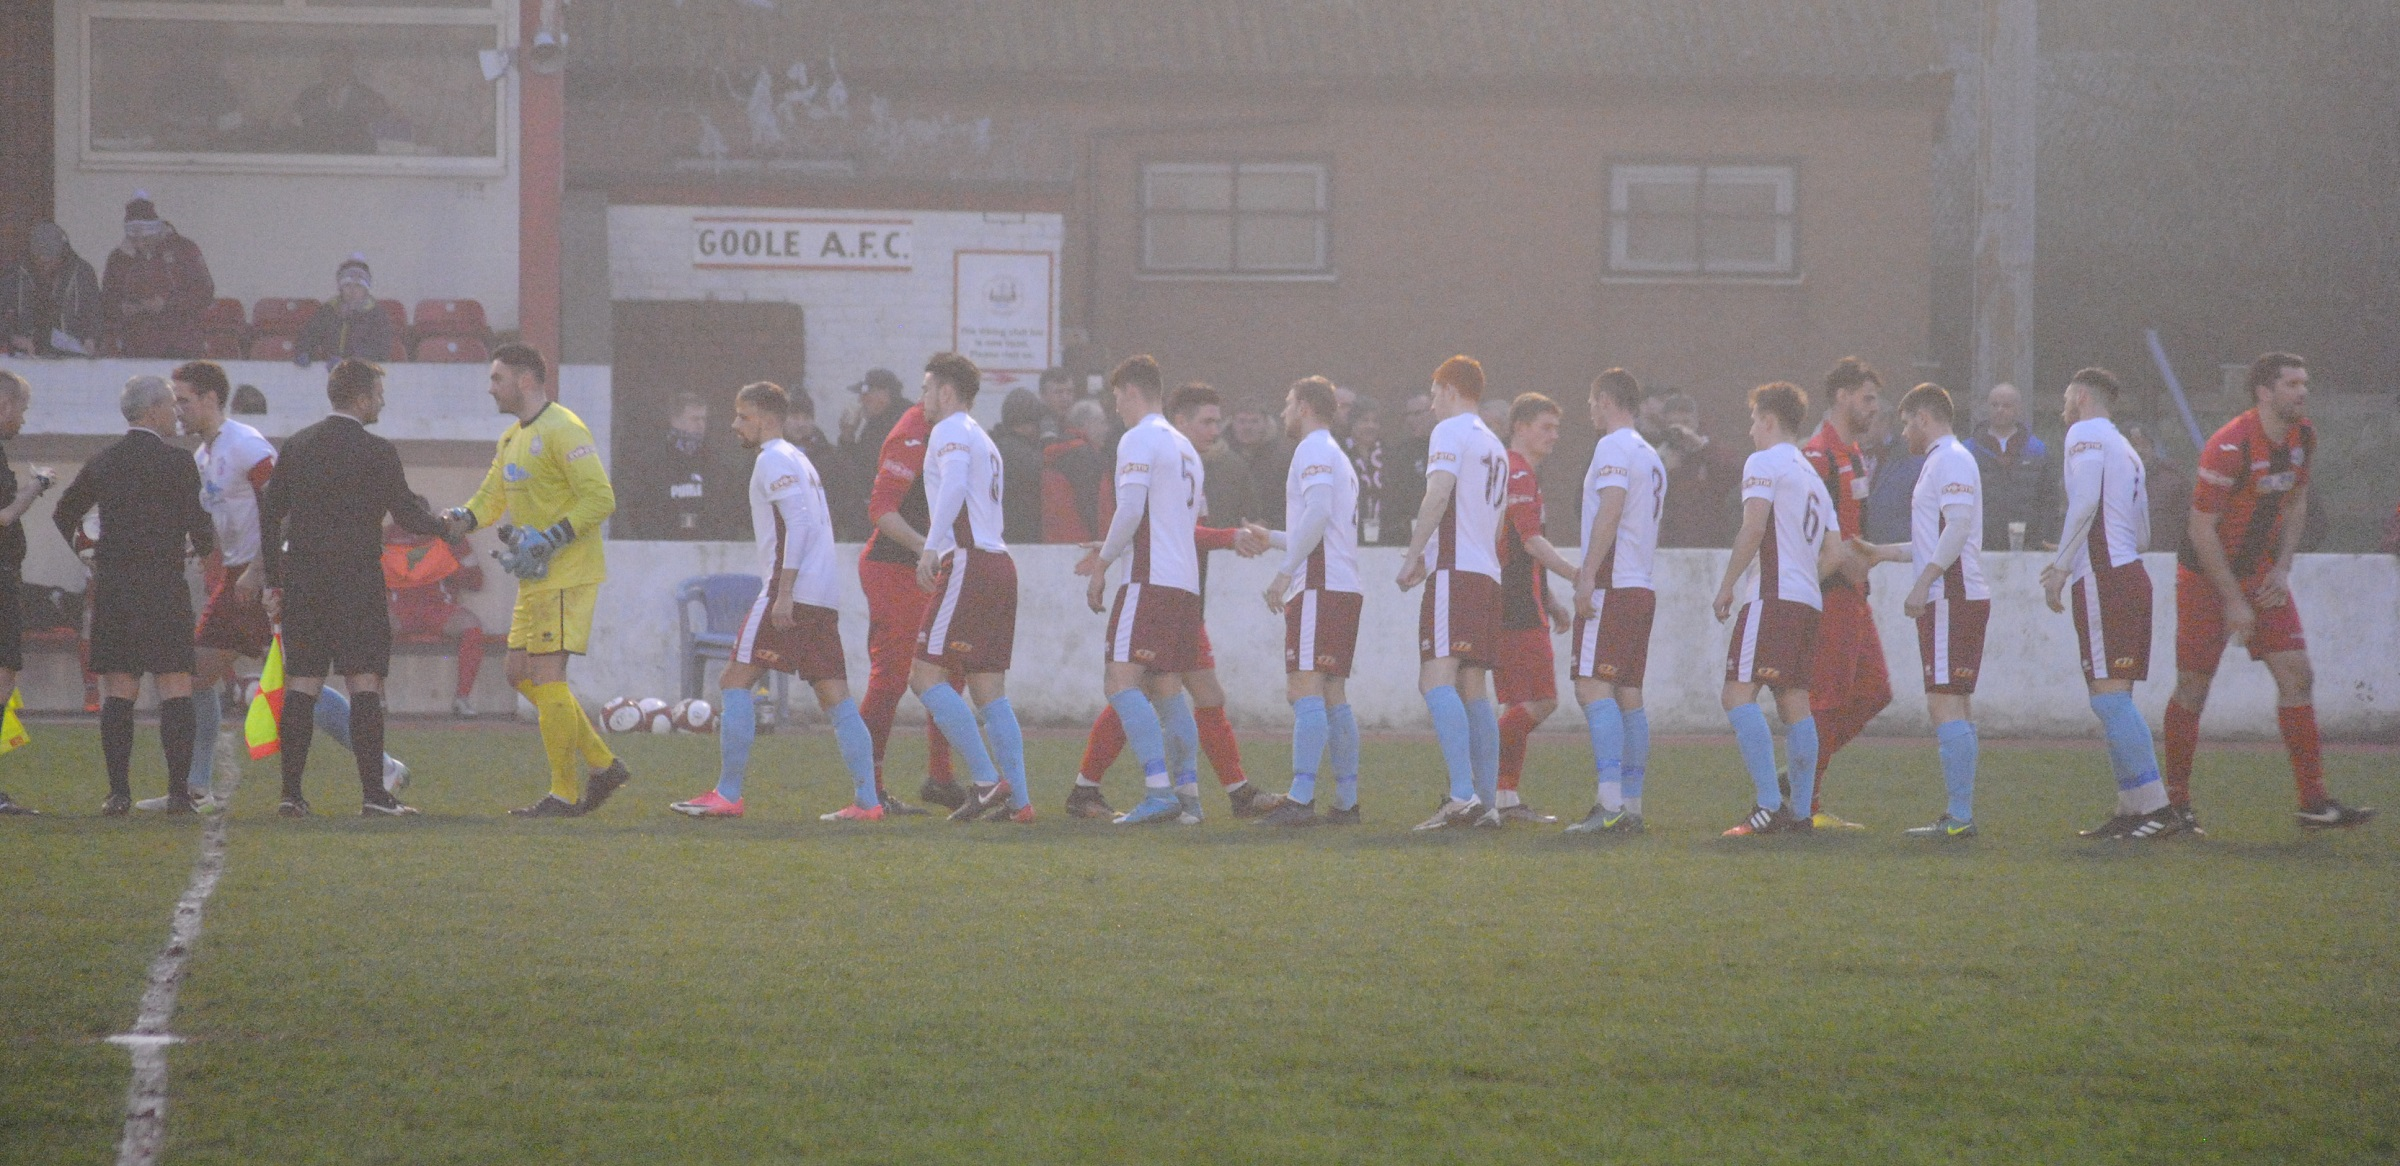 Goole AFC vs South Shields